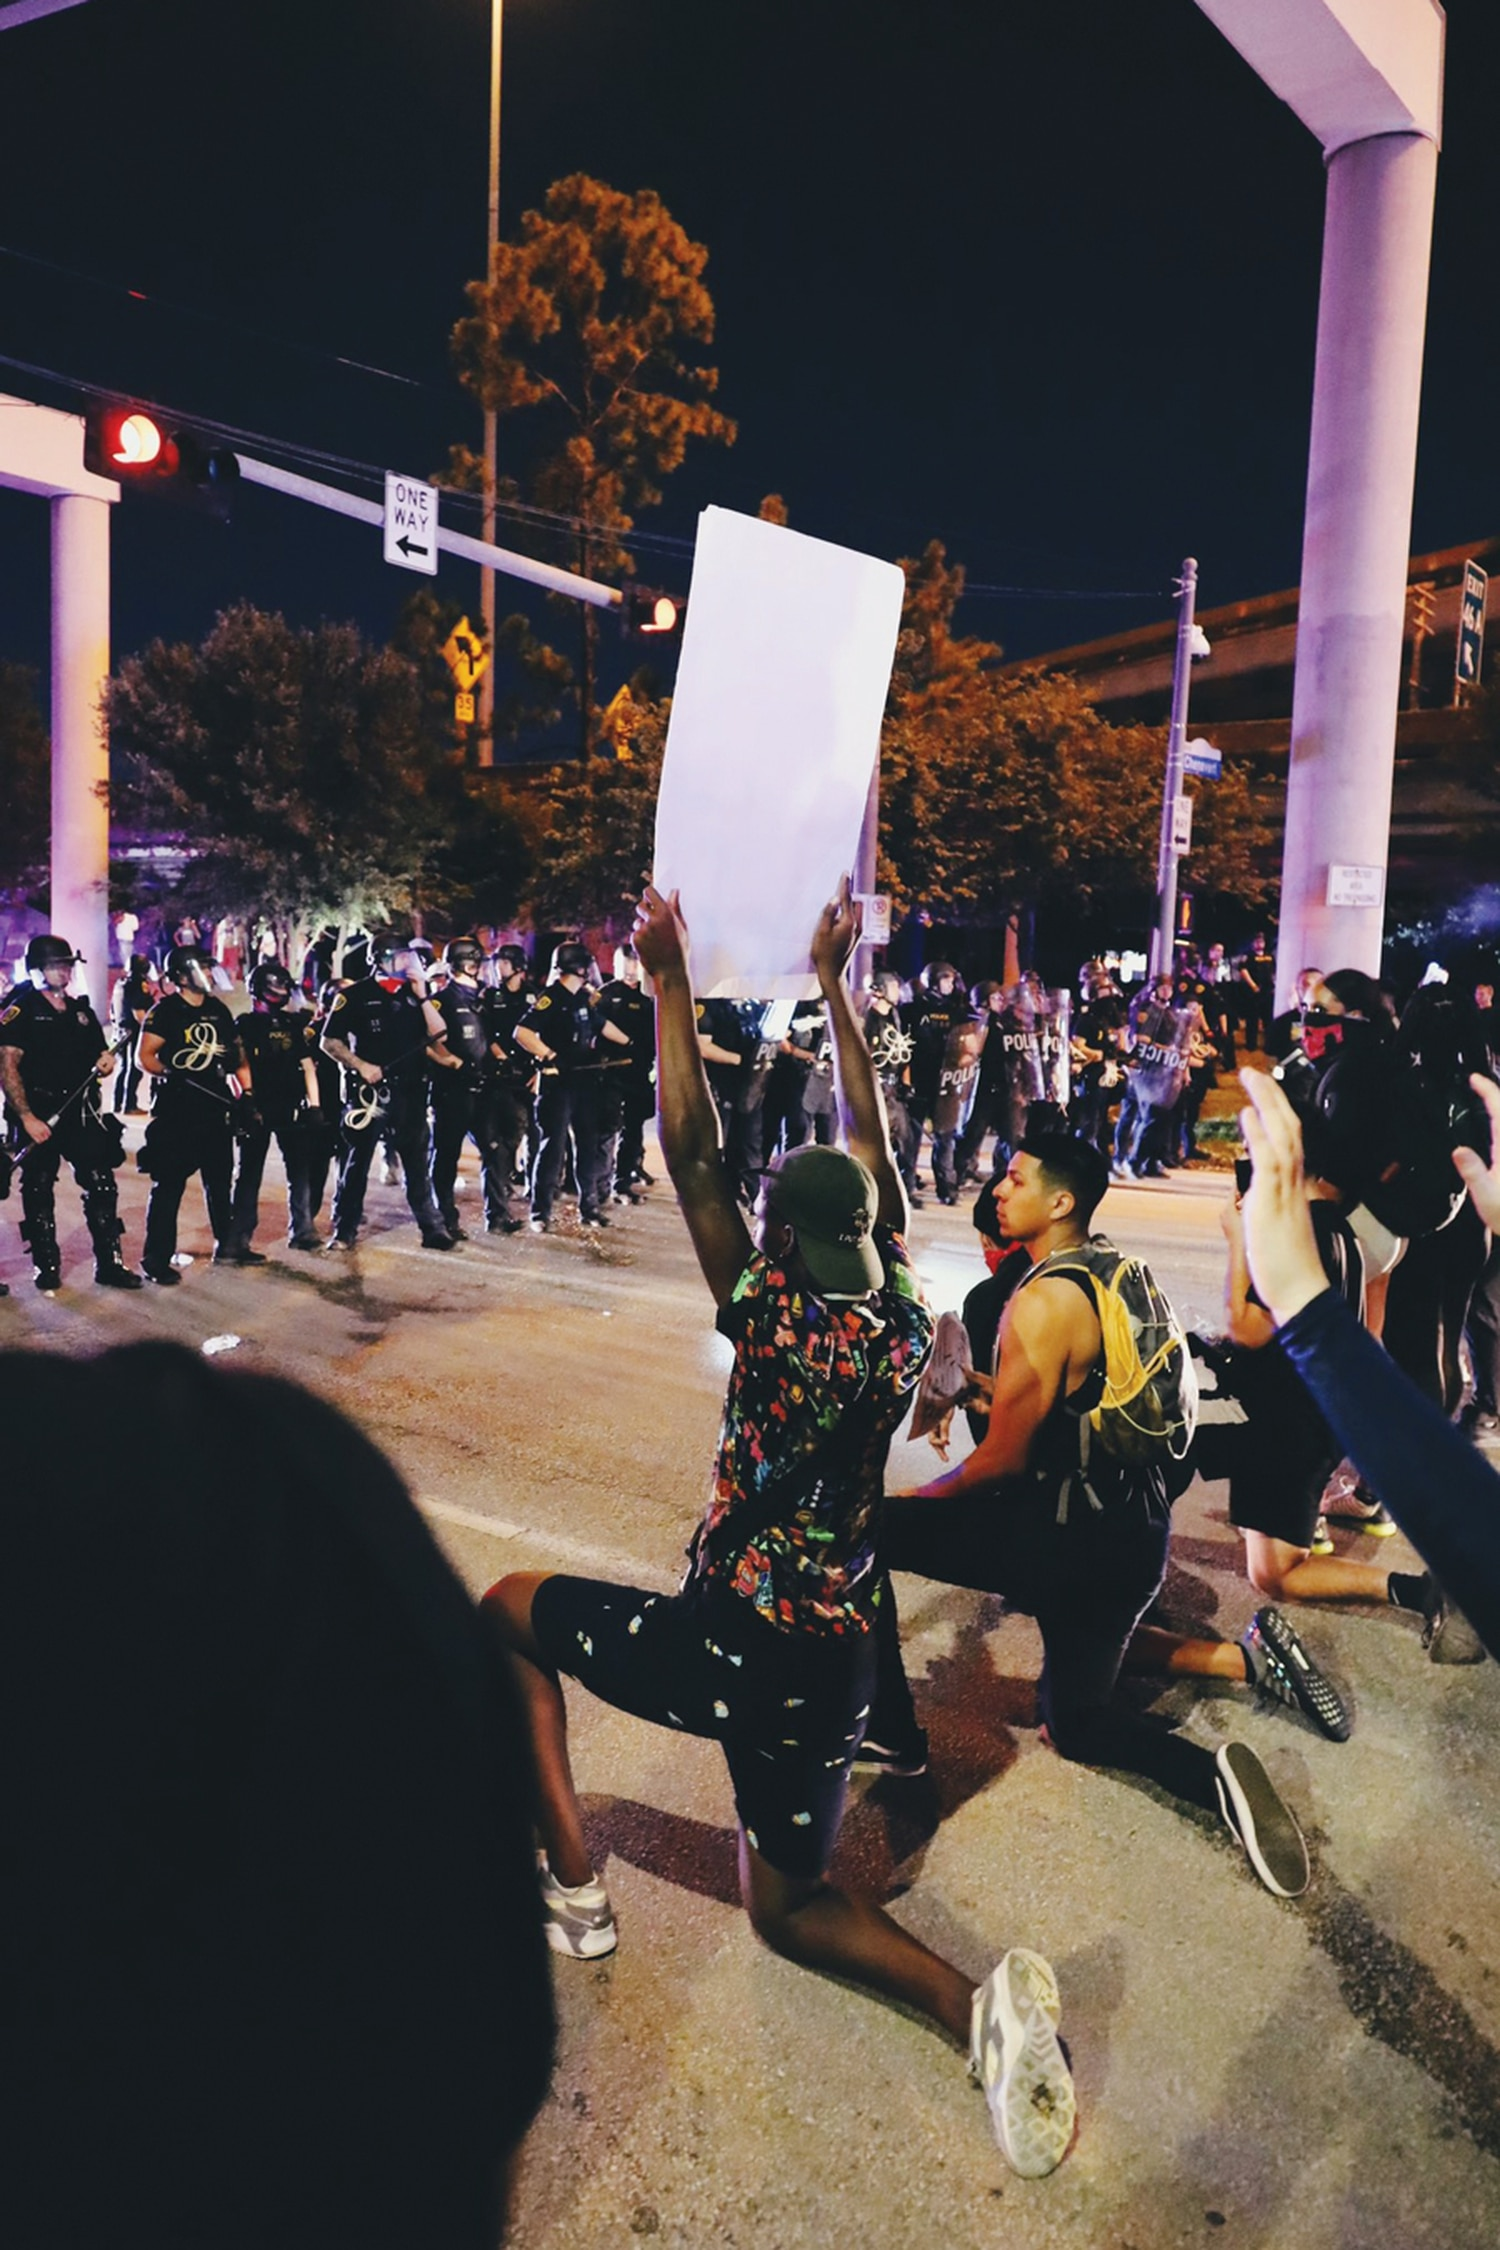 Police meet protesters in the street in downtown Houston on June 2. Later, 200 people would be arrested.